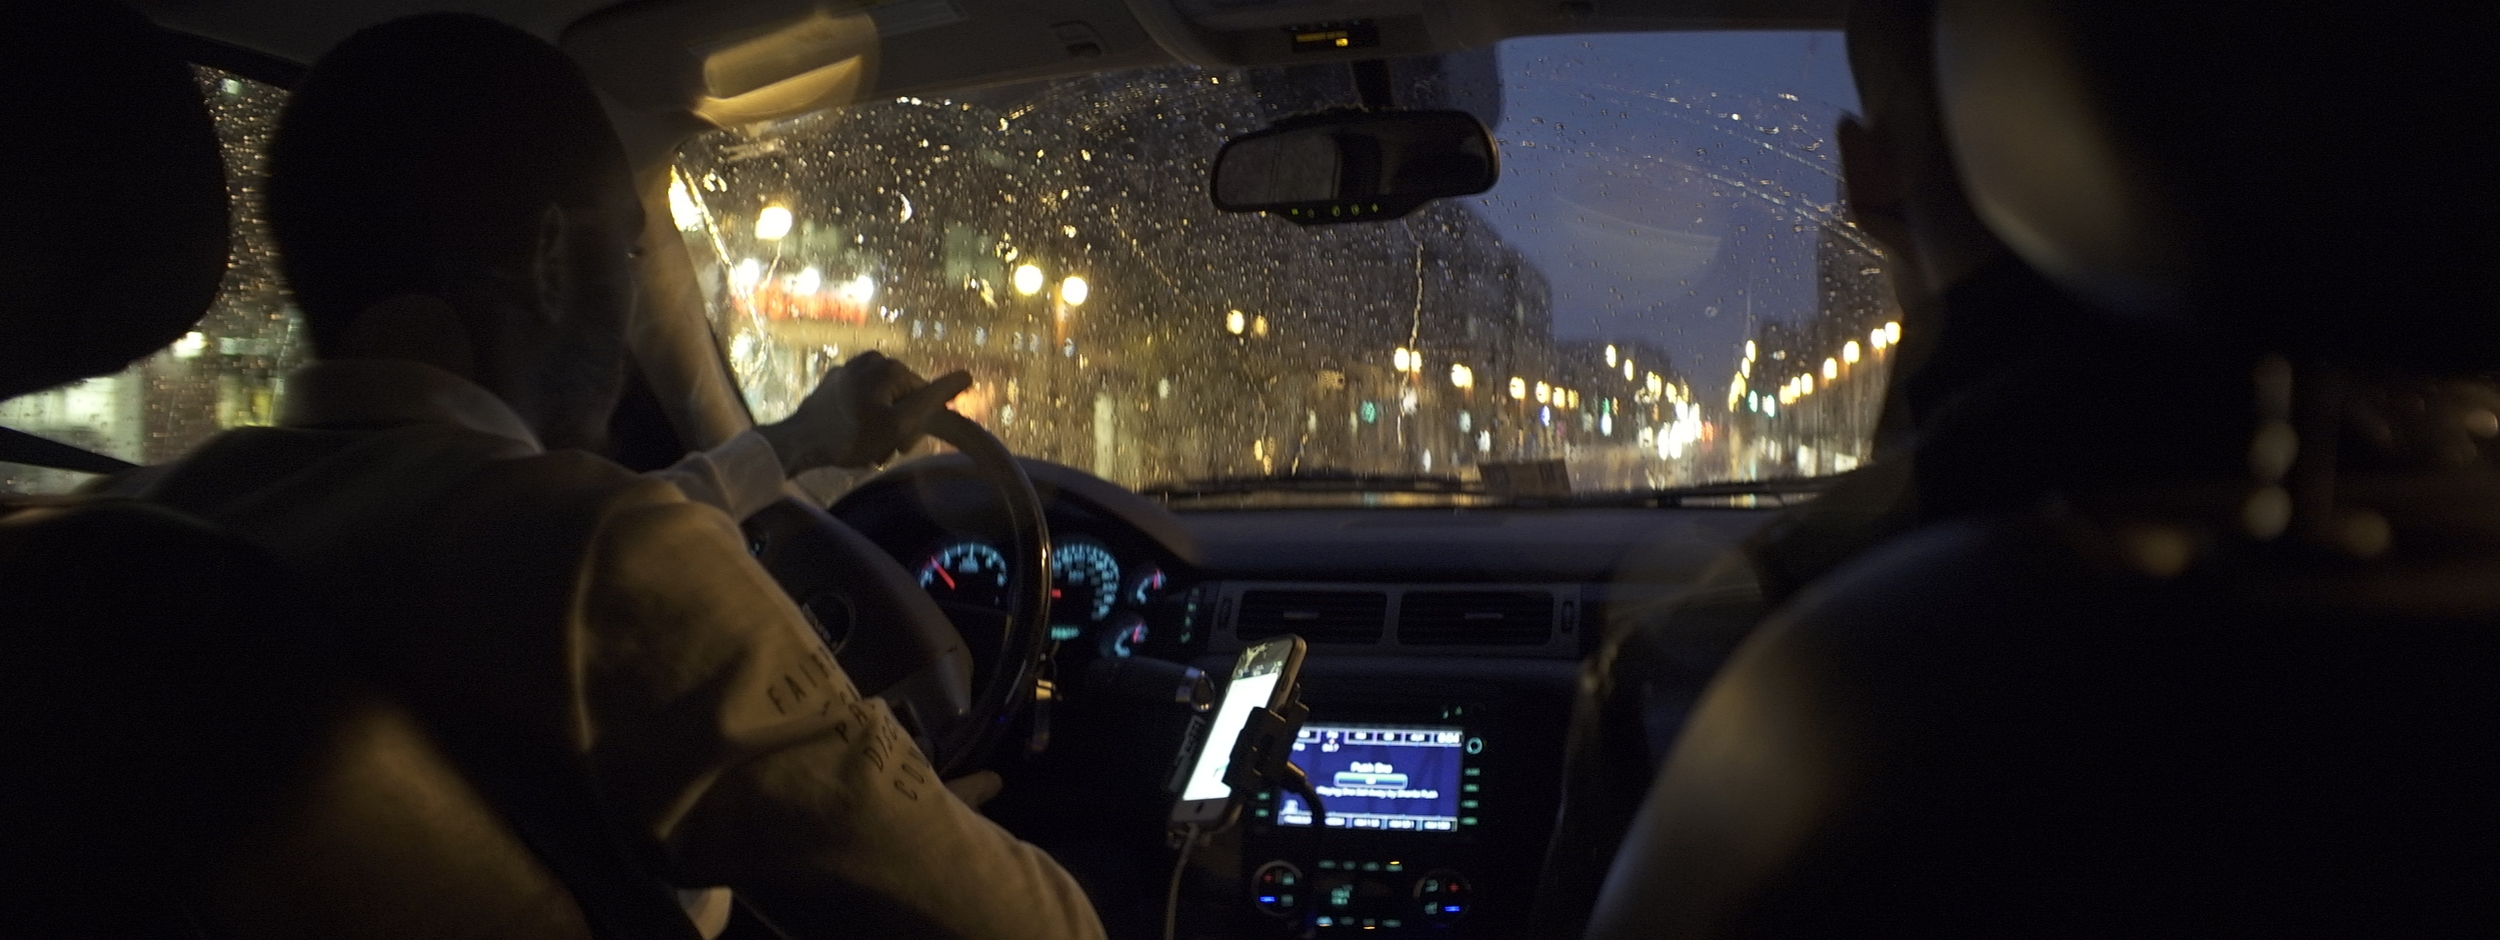 Elite 24.5mm anamorphic | Washington D.C. - Our friendly Uber driver in Washington D.C. This is a great example of what can be achieved for car interiors with this lens. T2.1. Photo by Keith Nickoson.